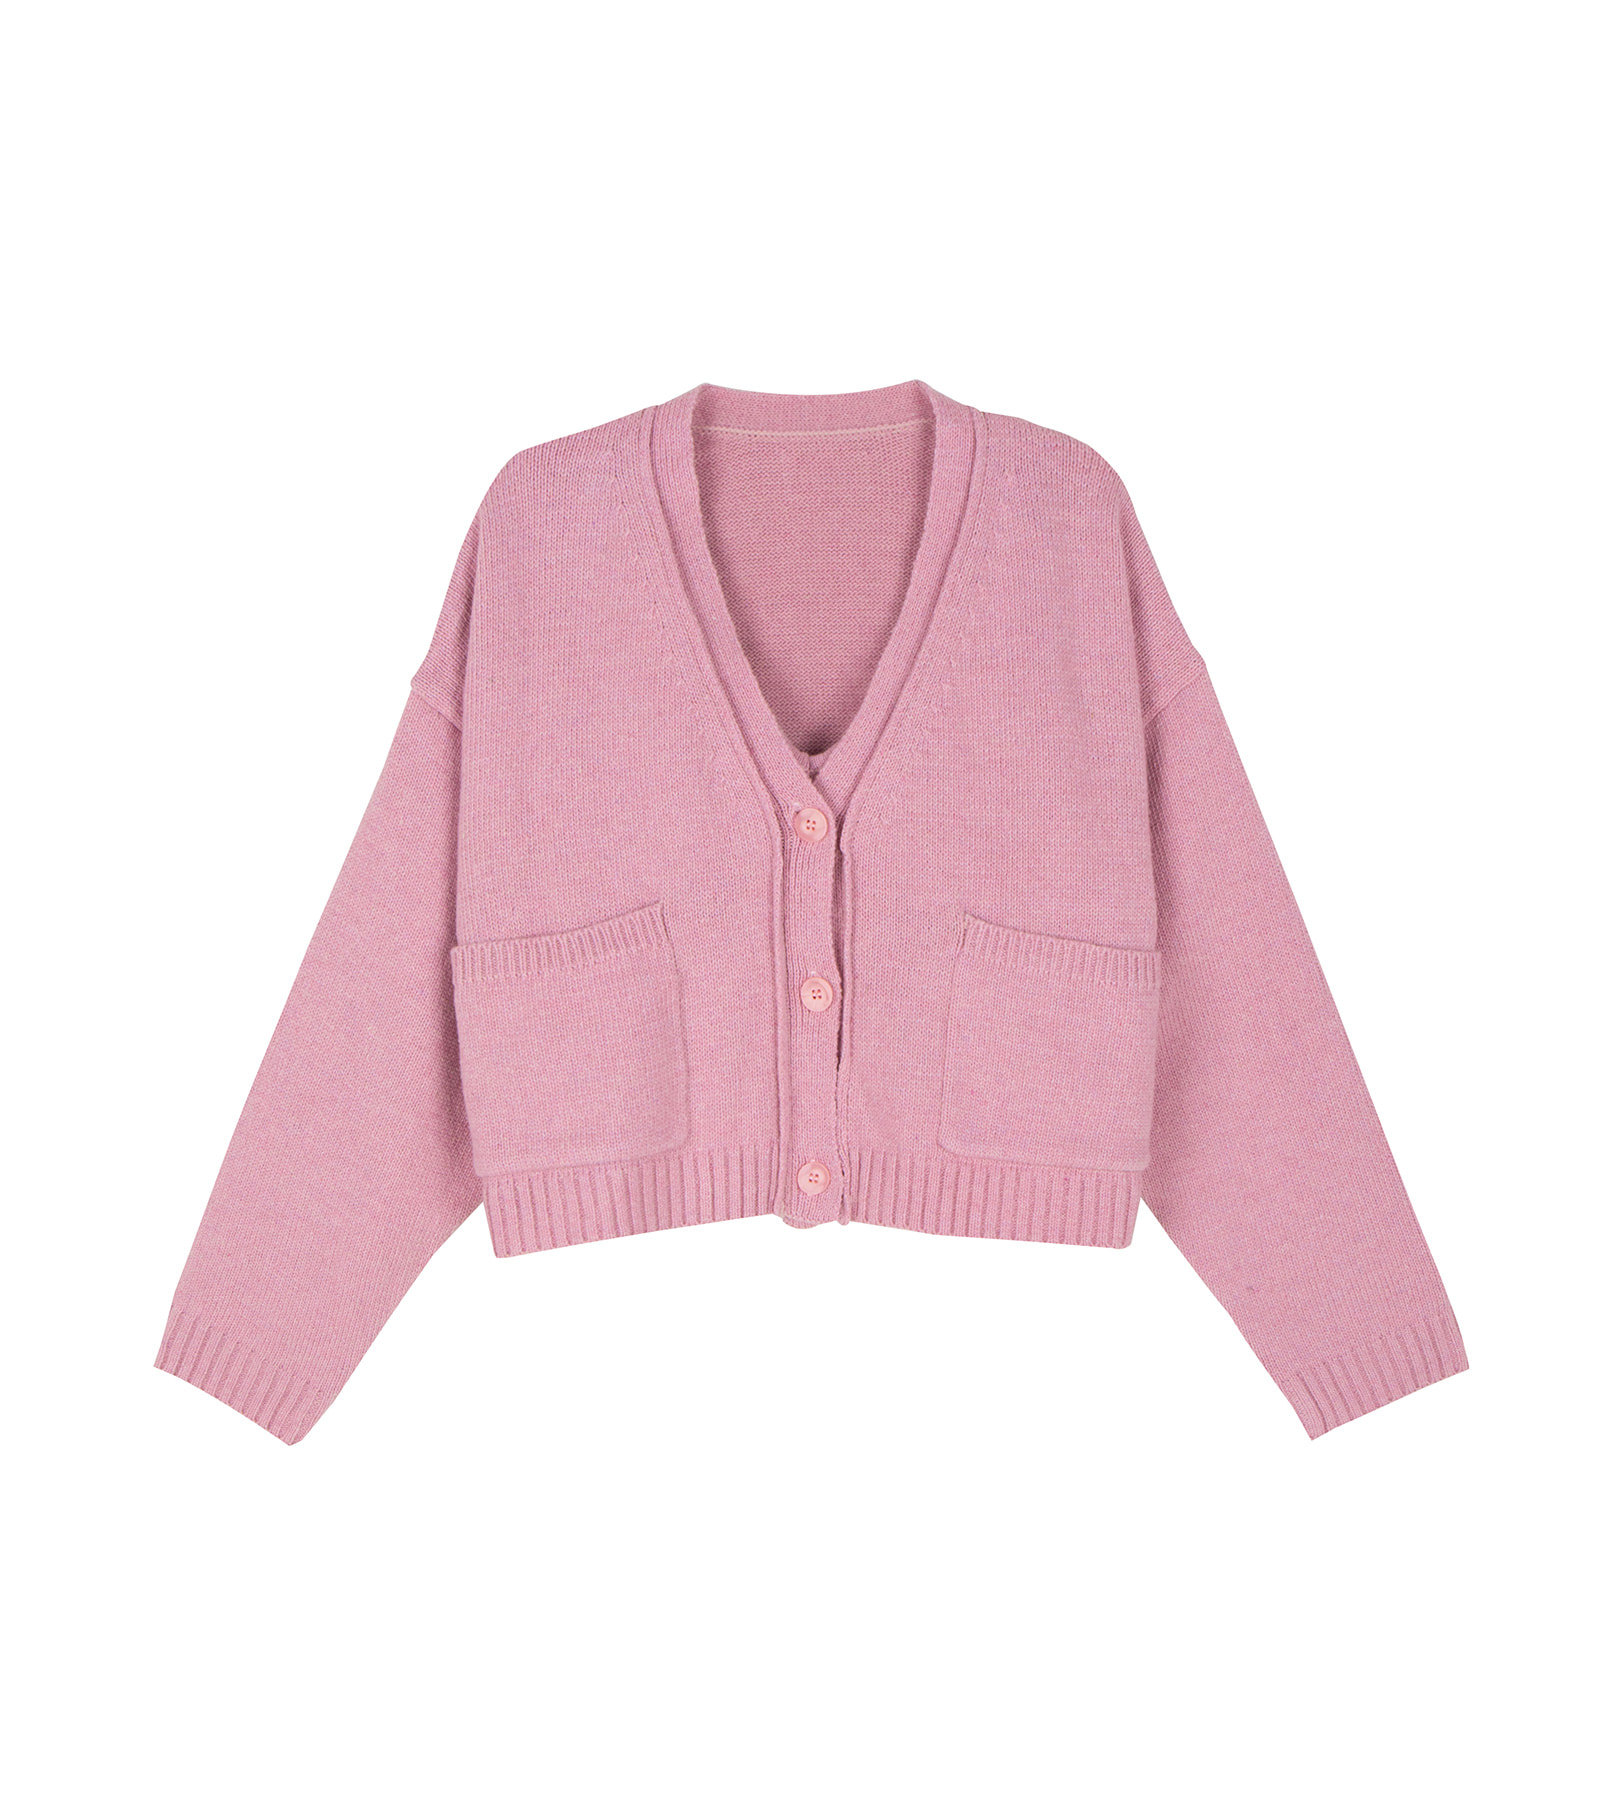 Twin knit set cardigan